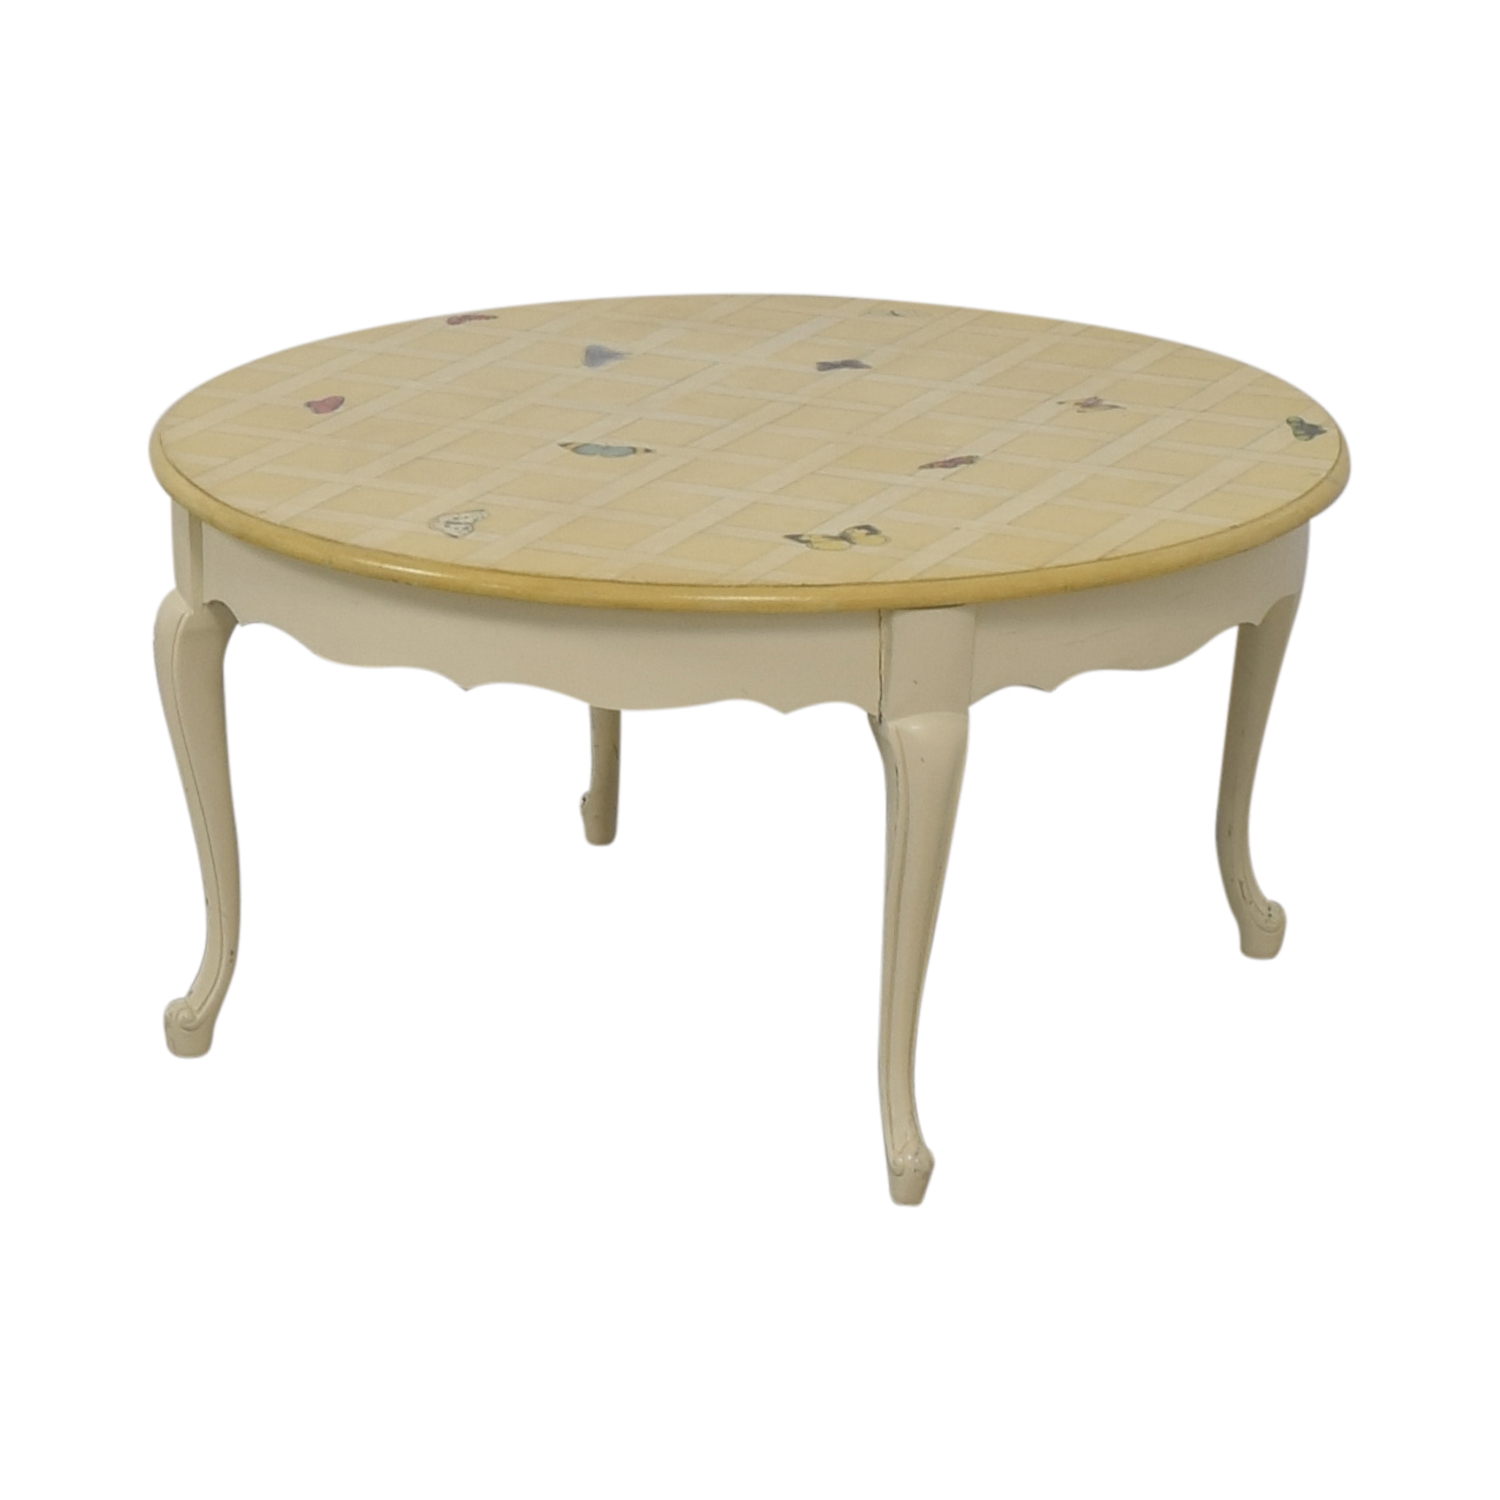 Round Custom Erfly Painted White Coffee Table Dimensions